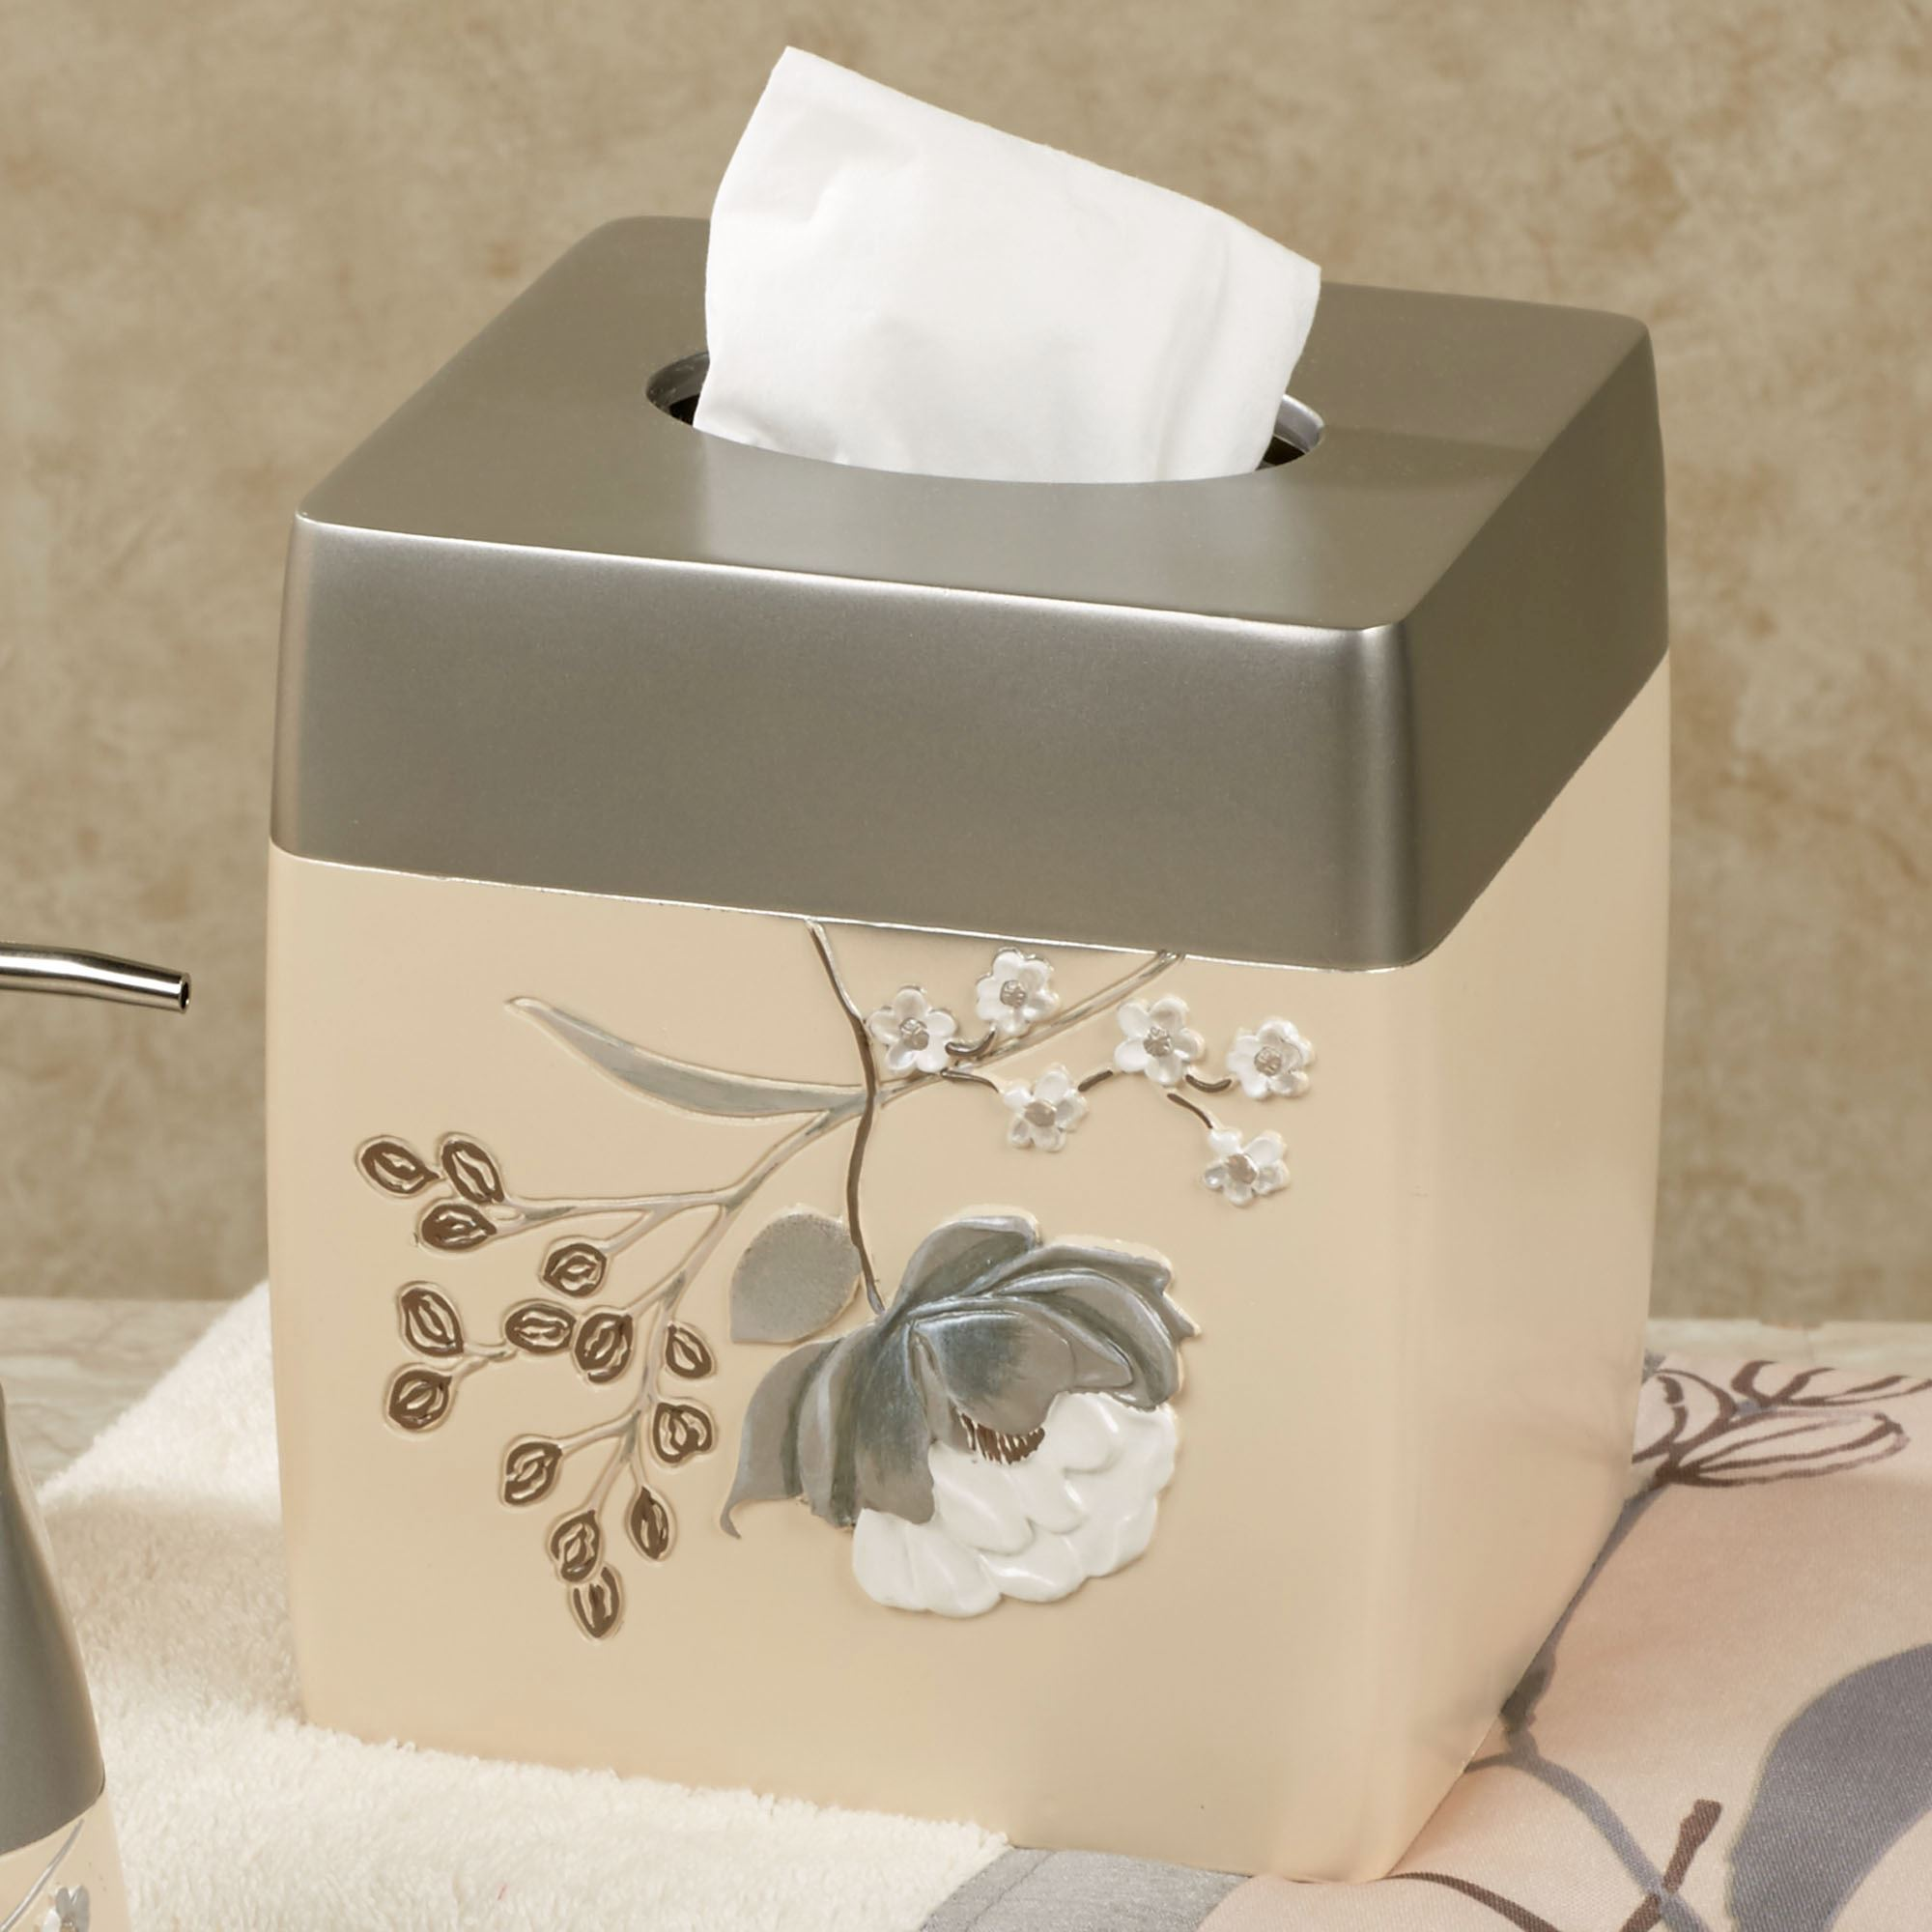 Ashley floral bath accessories for Beige bathroom set